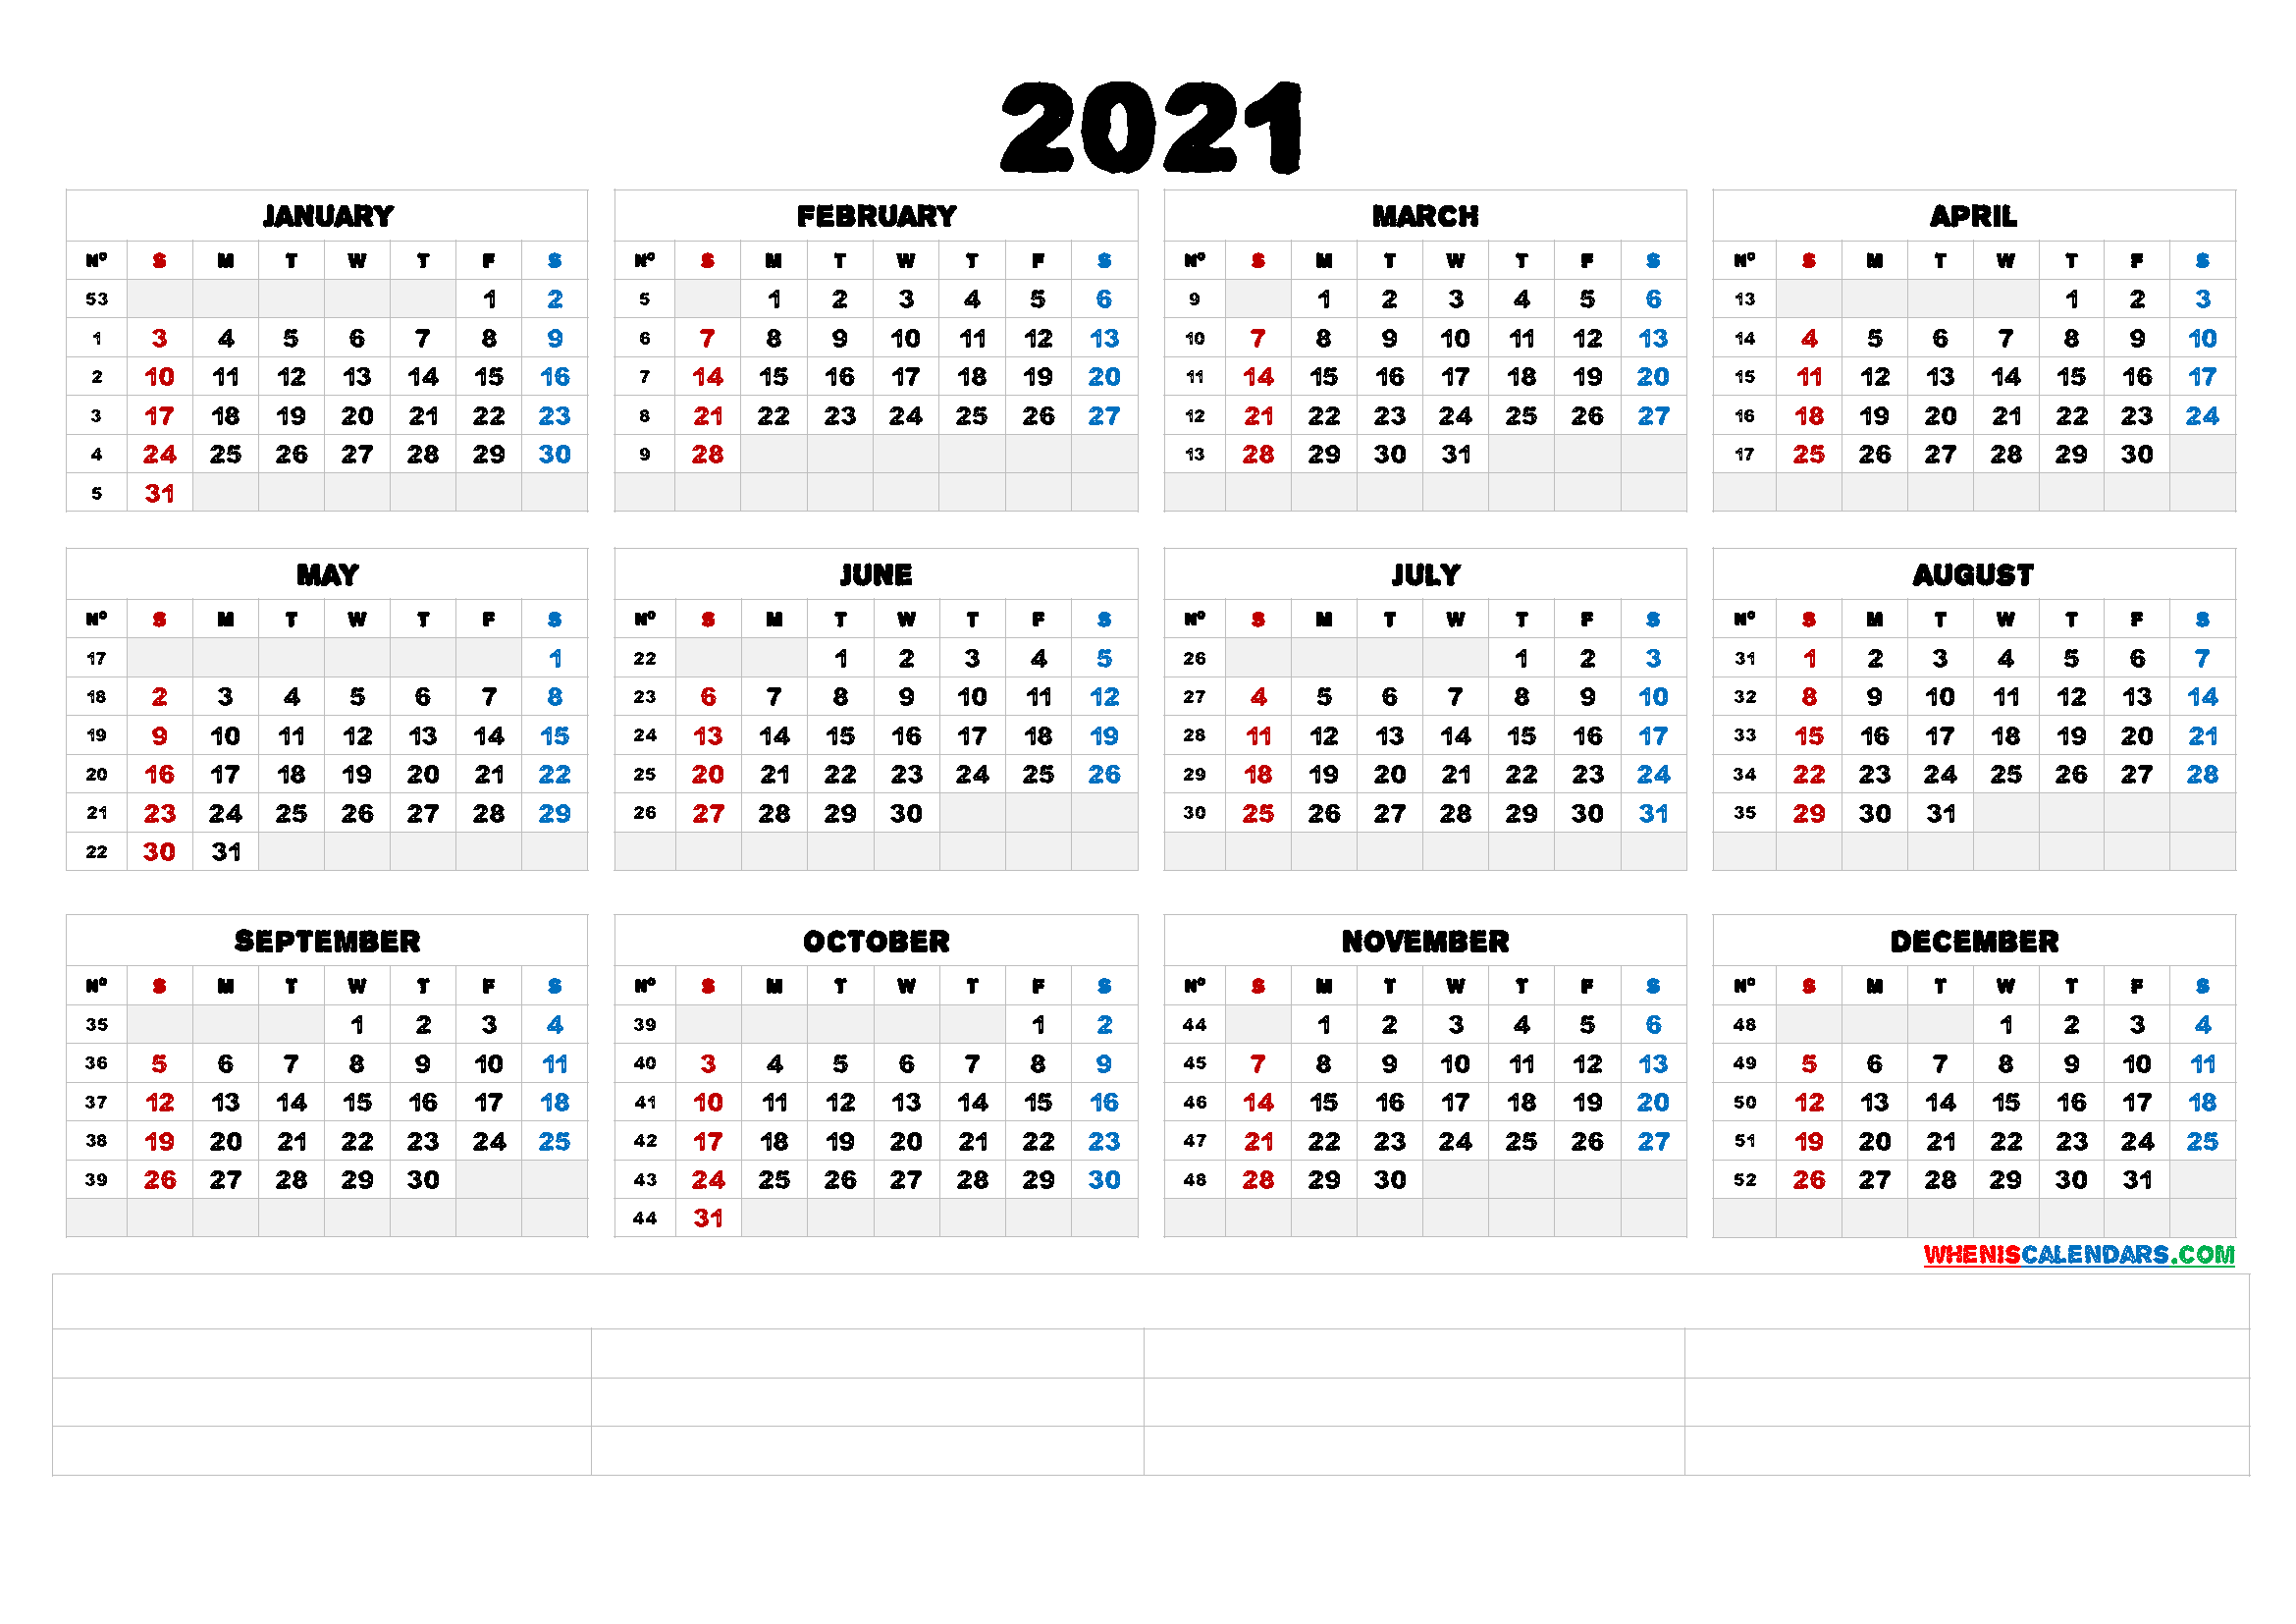 Printable 2021 Calendar by Month (6 Templates) - Free ...